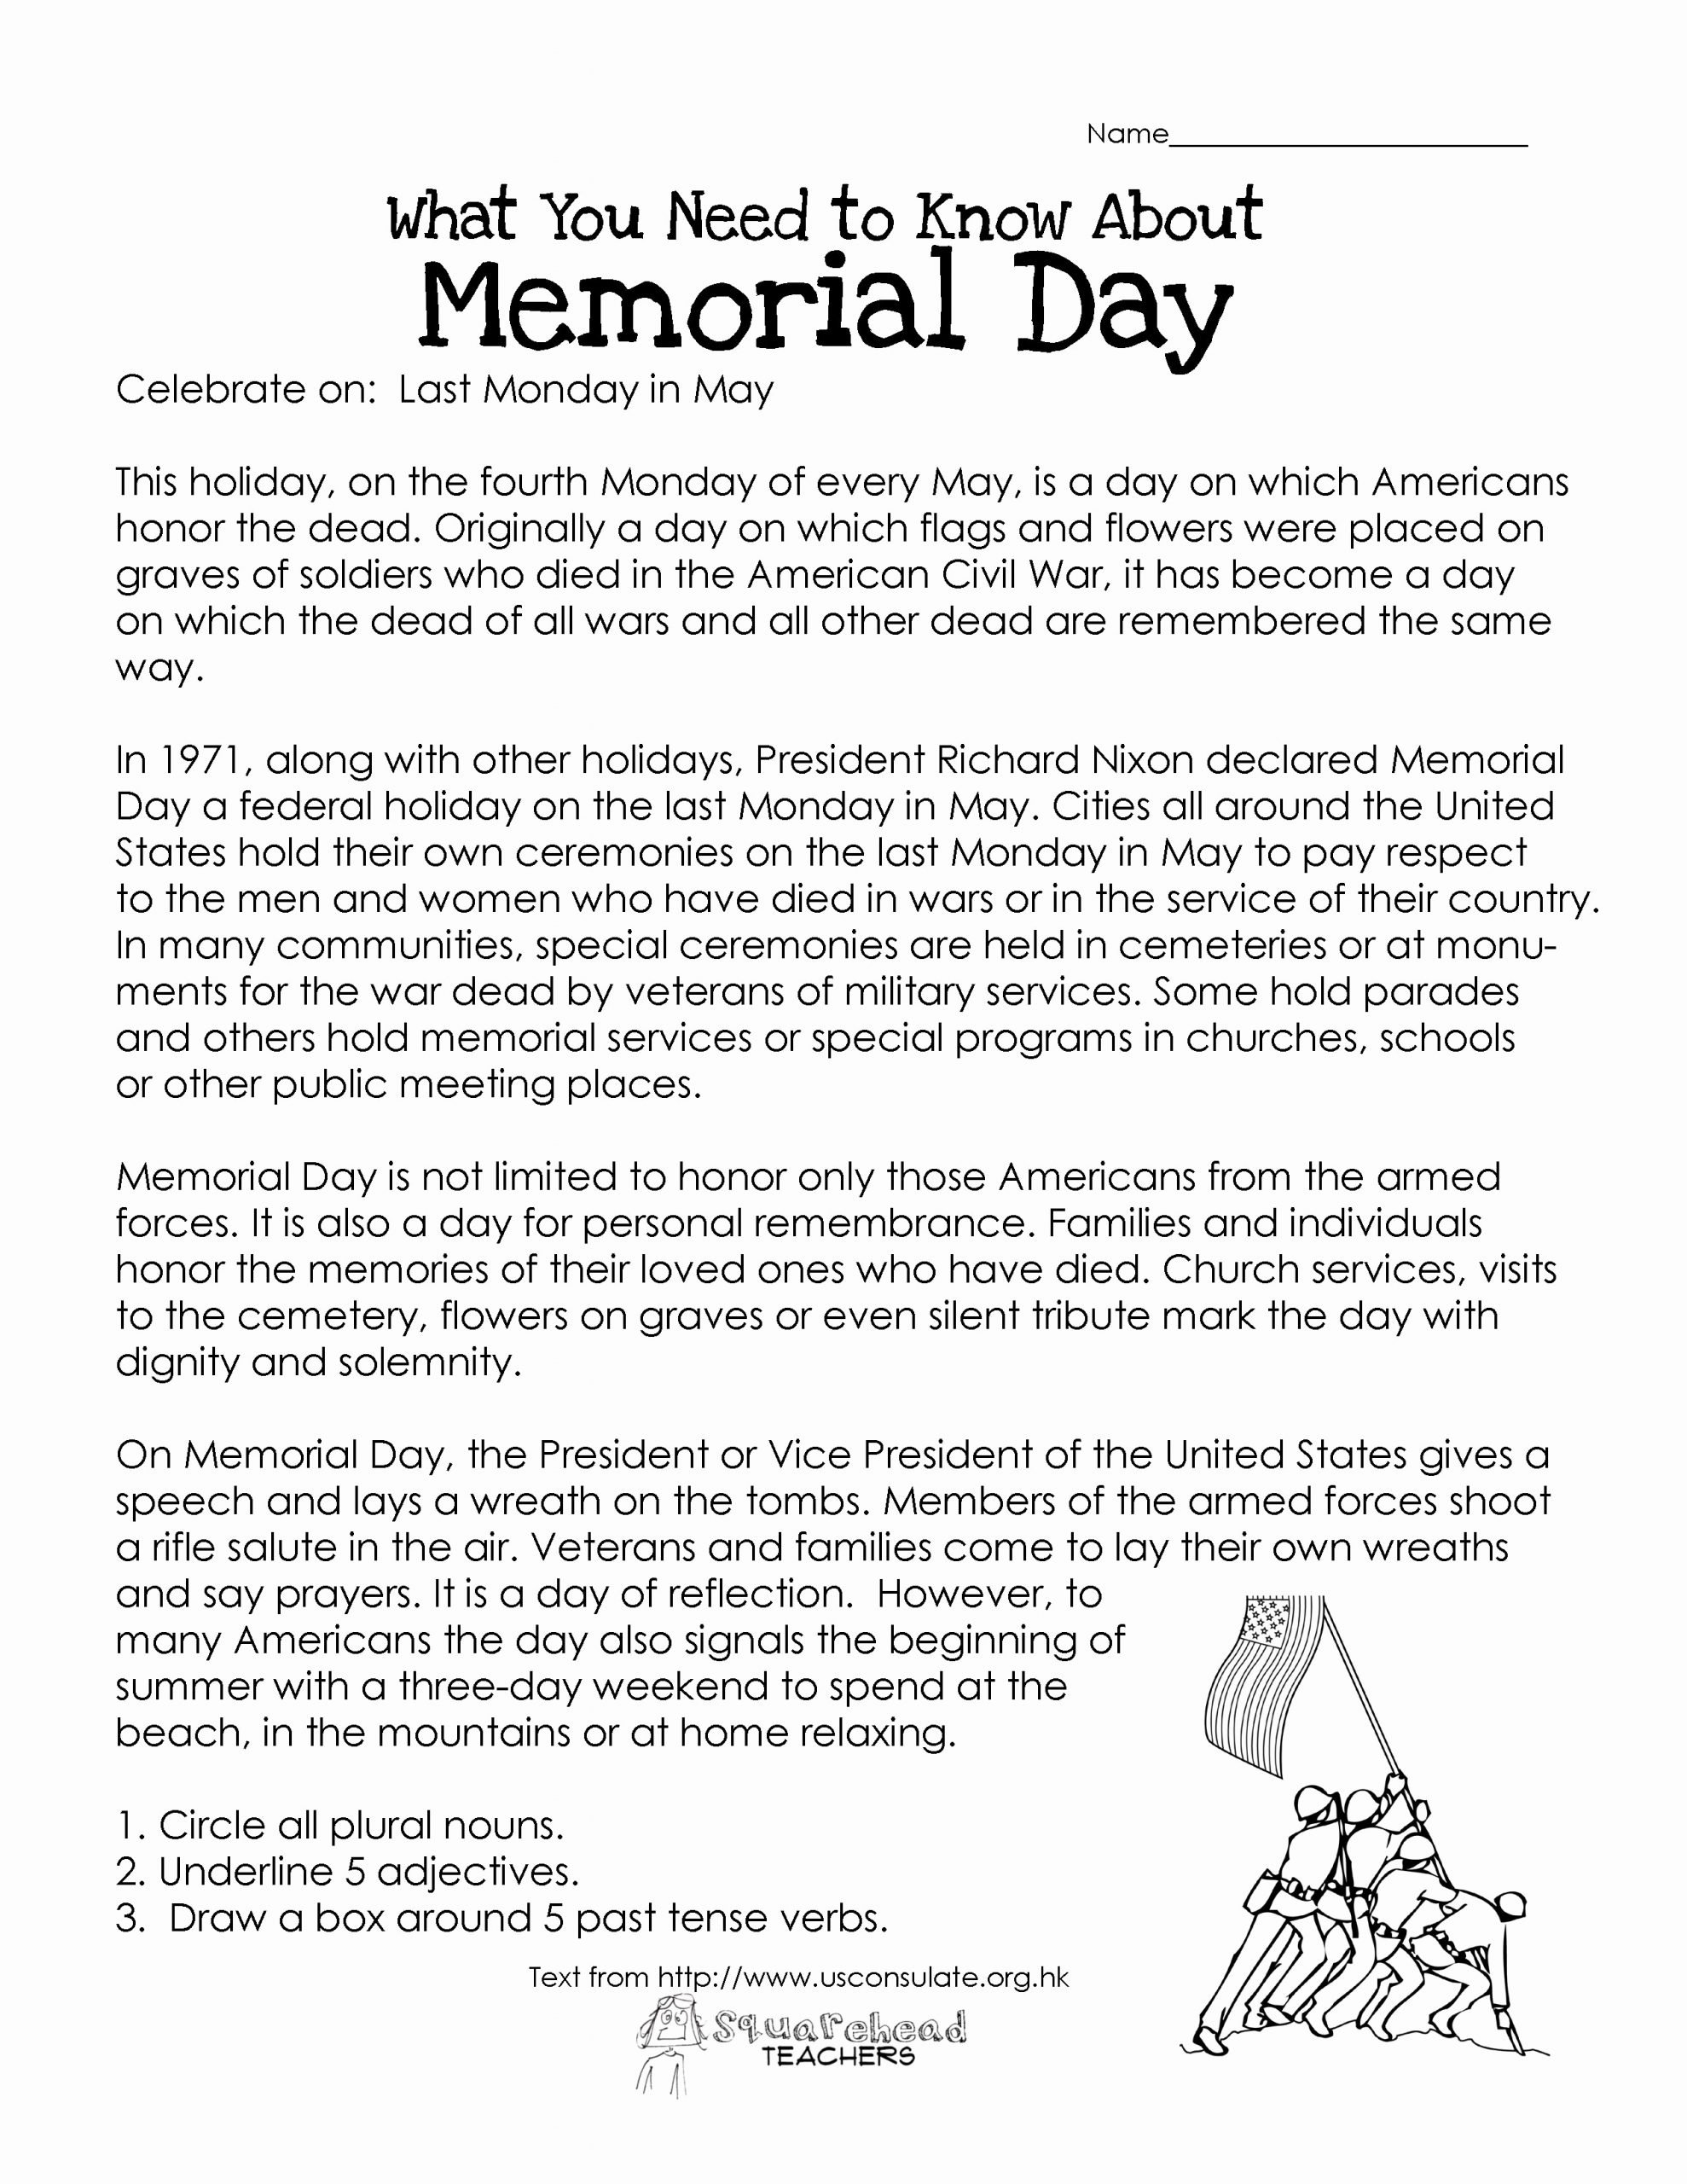 Memorial Day Worksheets for Preschoolers Fresh Memorial Day Free Worksheet